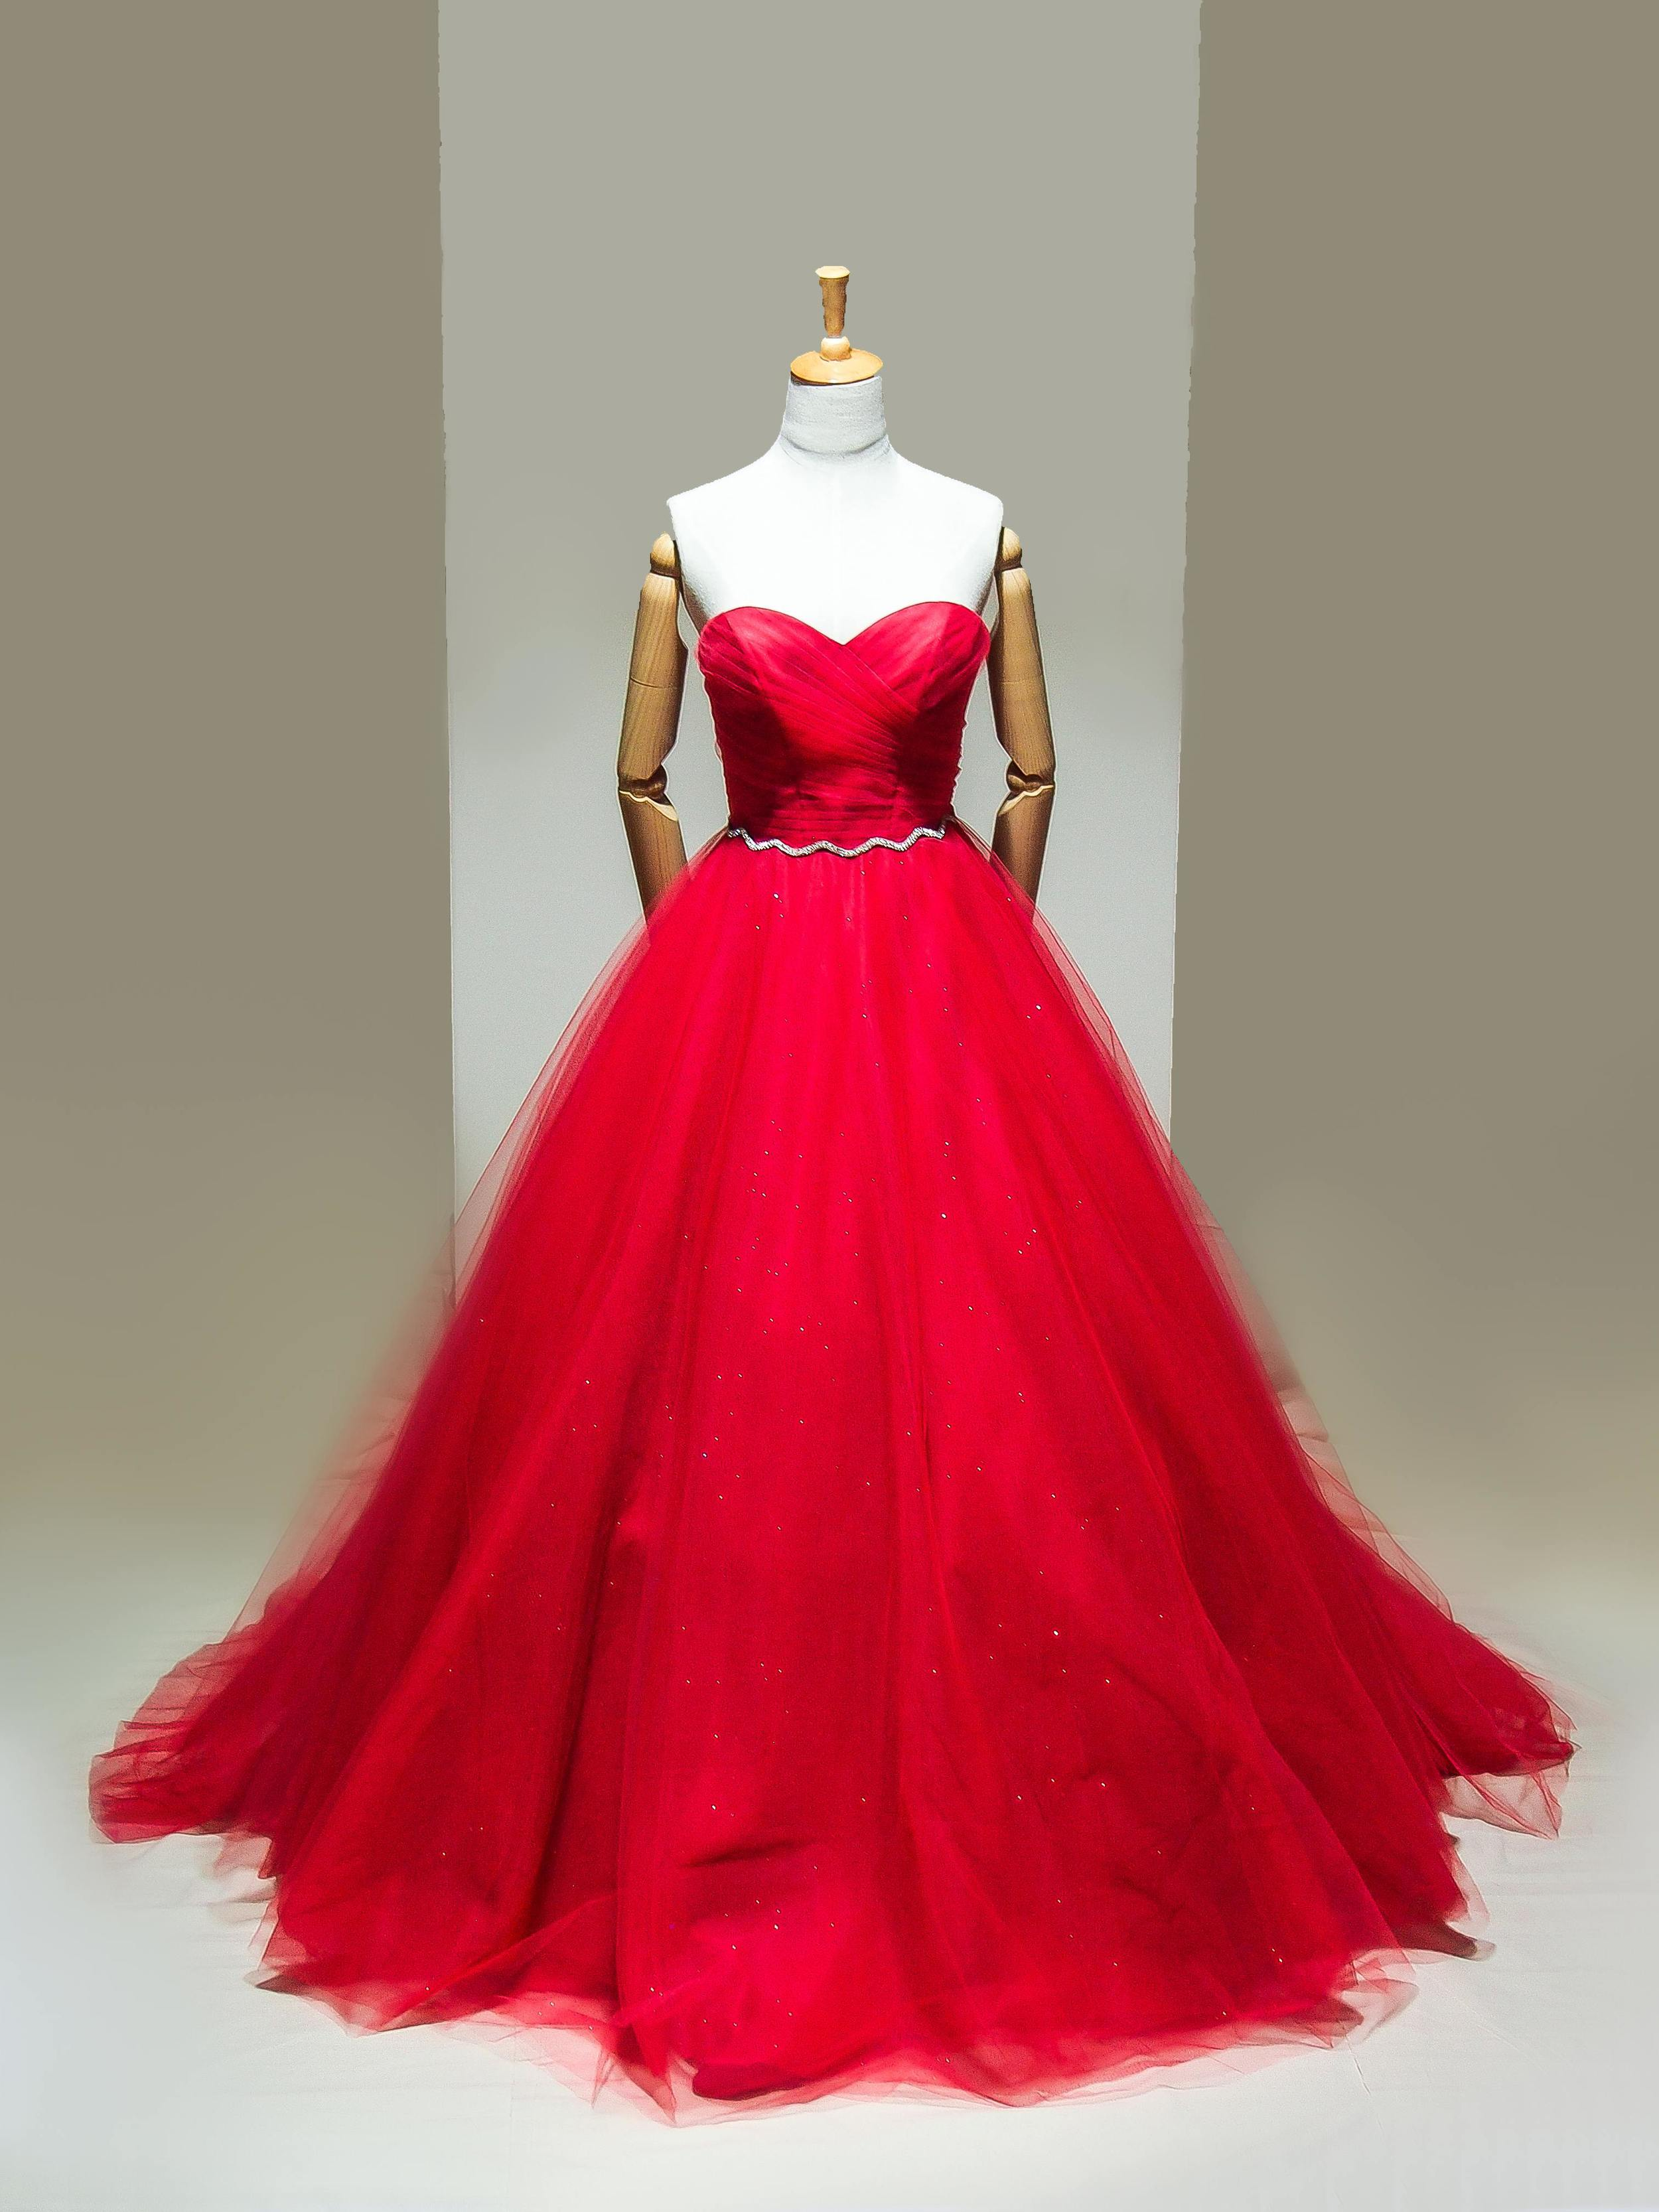 Reese  A classic princess tulle ballgown with a touch of elegance and glamour, allowing the volume and vibrancy to speak for themselves.